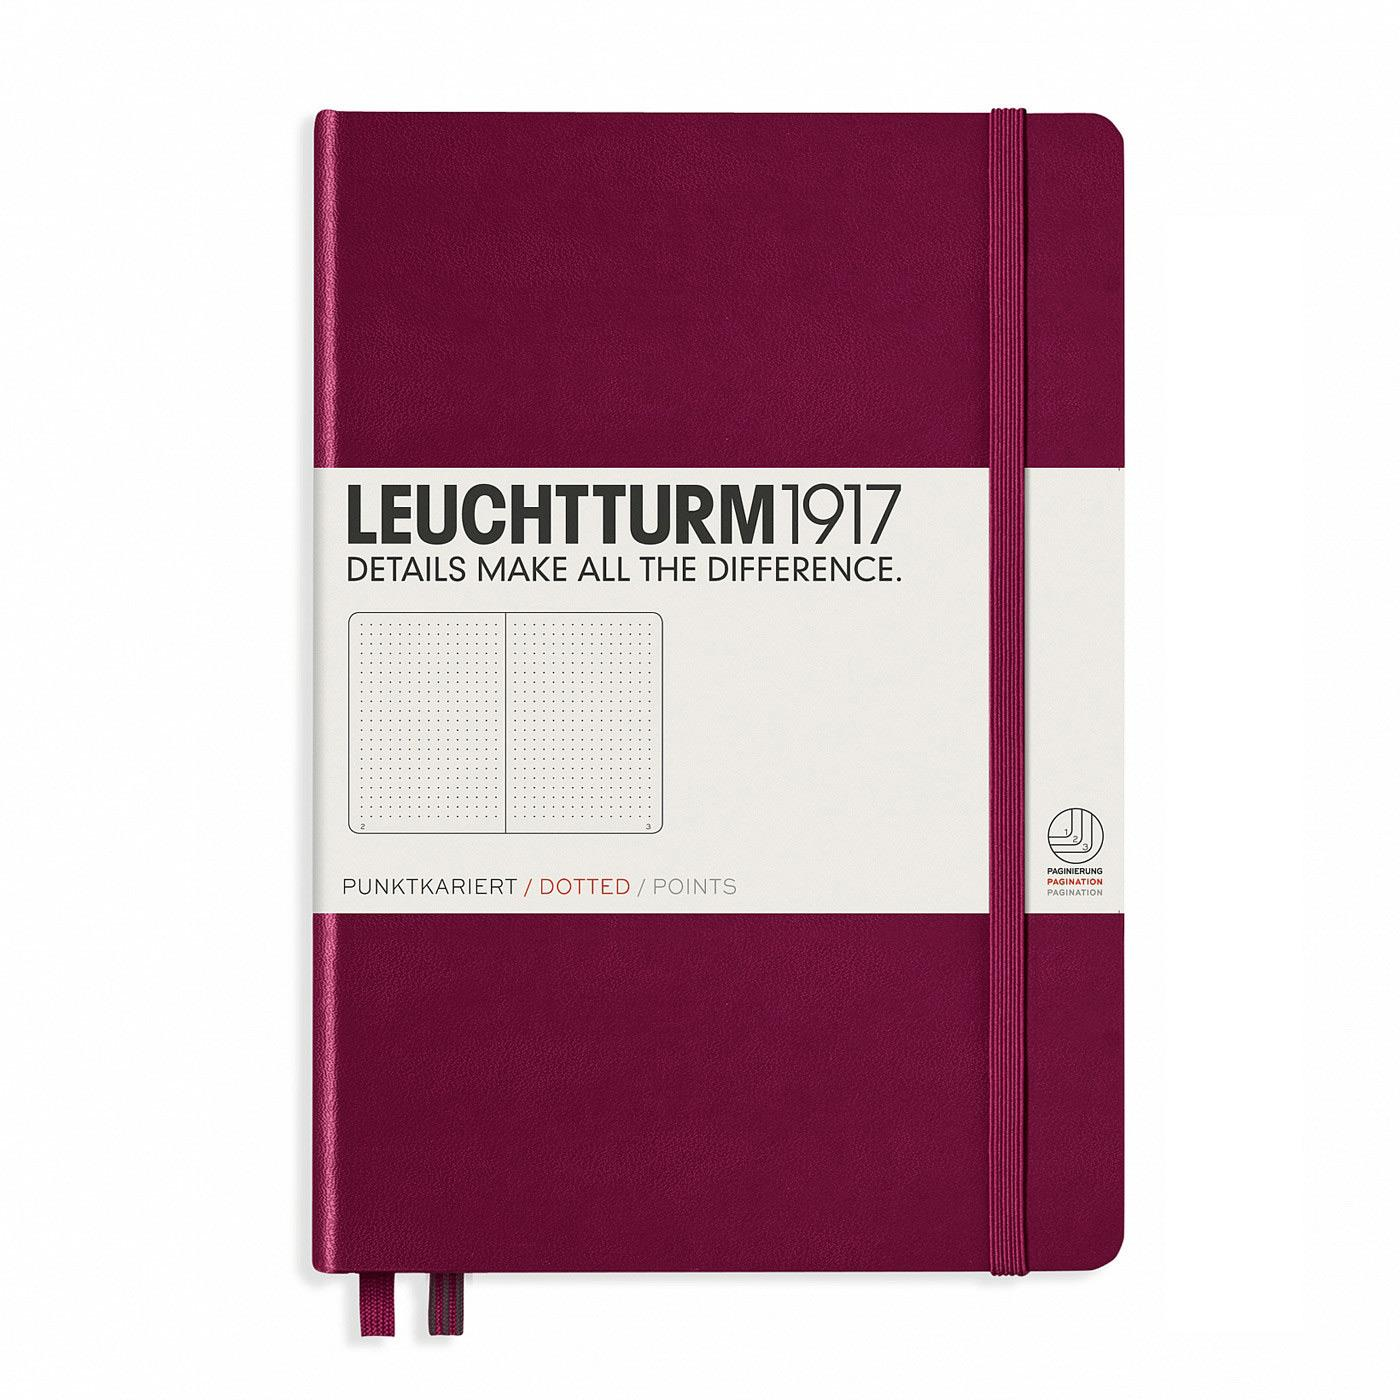 Leuchtturm 1917 A5 Medium Hardcover Notebook – Port Red – Dotted